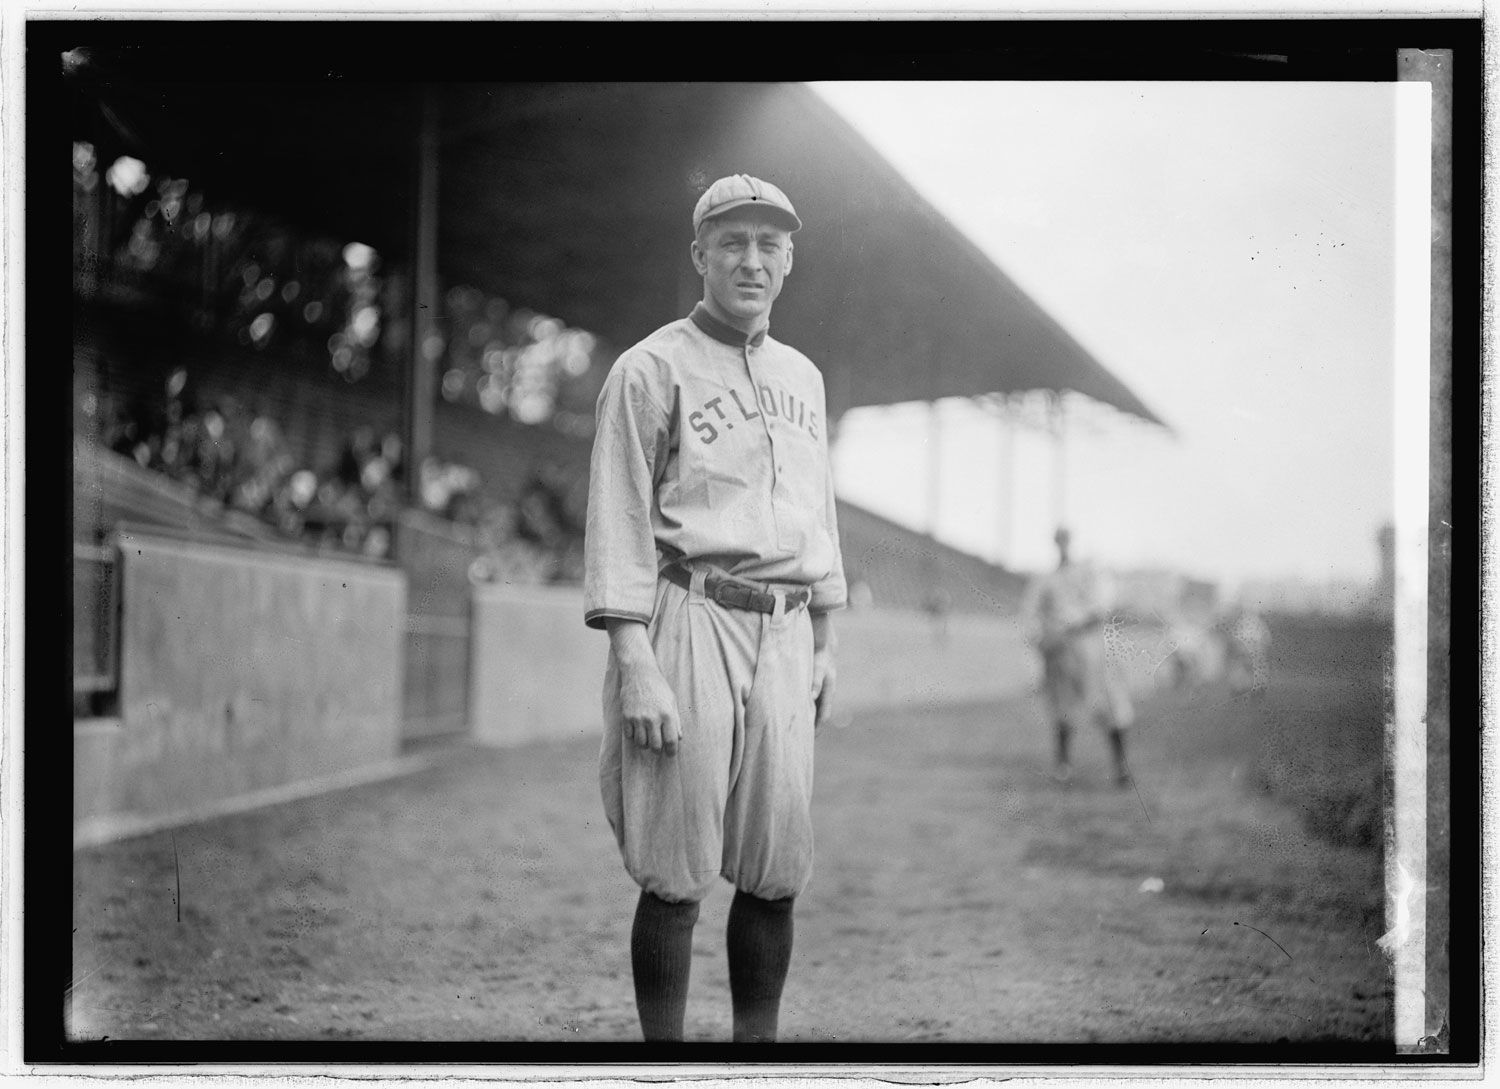 A shot of Branch Rickey from his playing days for the St. Louis Browns. (Library of Congress/National Photo Company Collection)